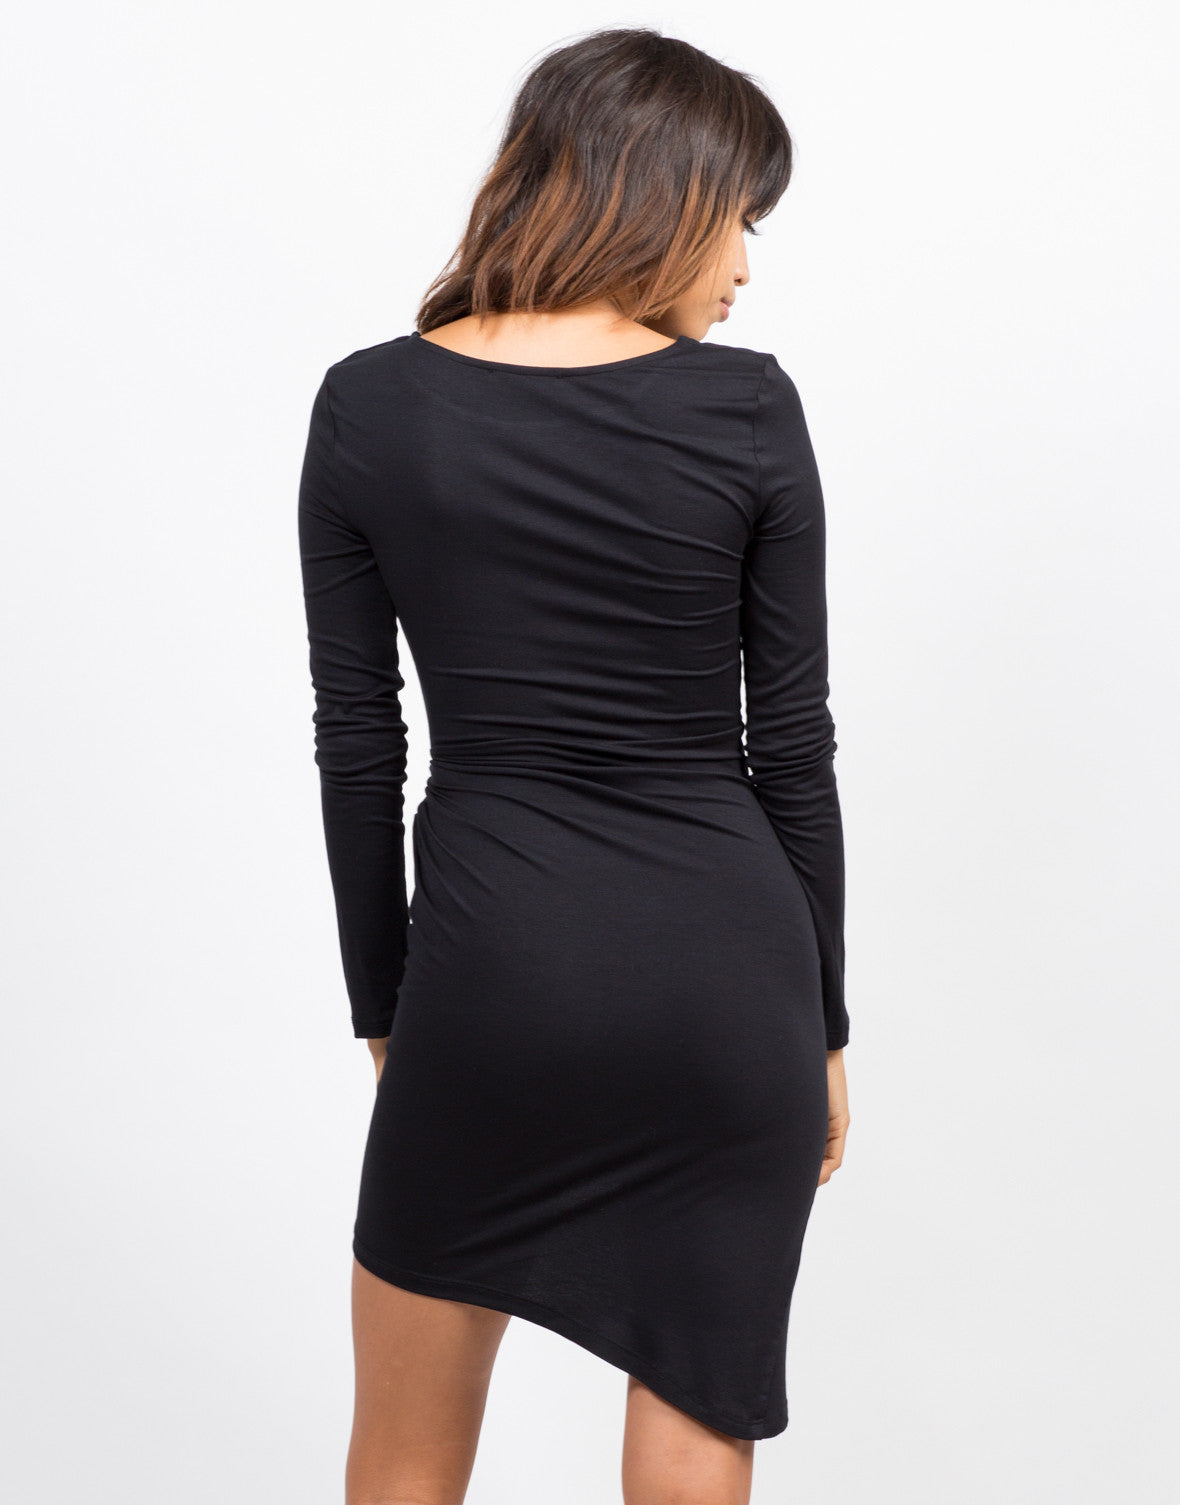 Back View of Knot It Long Sleeve Dress